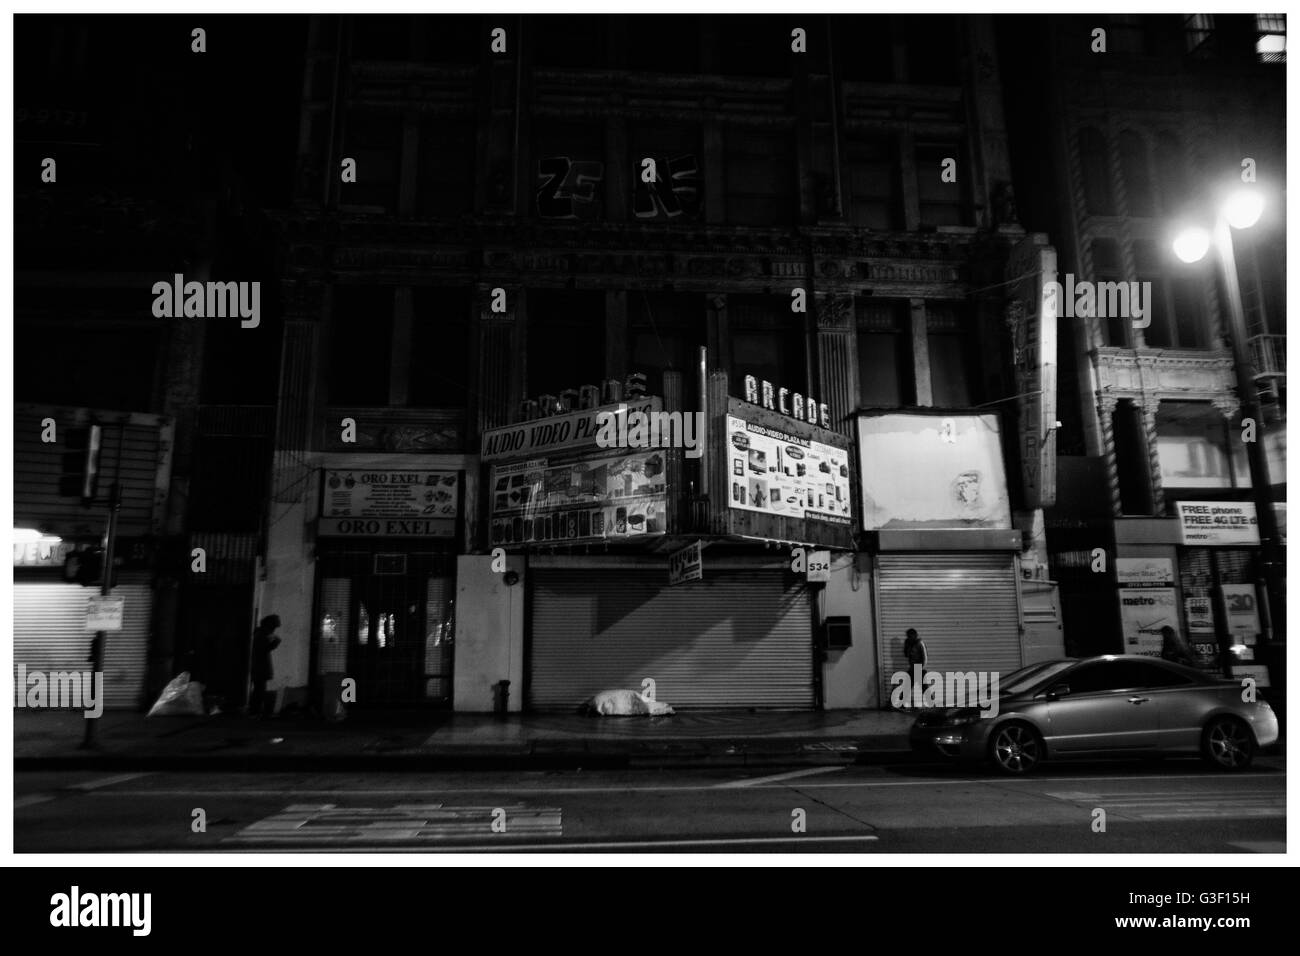 LA Noir: Downtown Los Angeles at Night - Arcade Marquee on Broadway - Stock Image